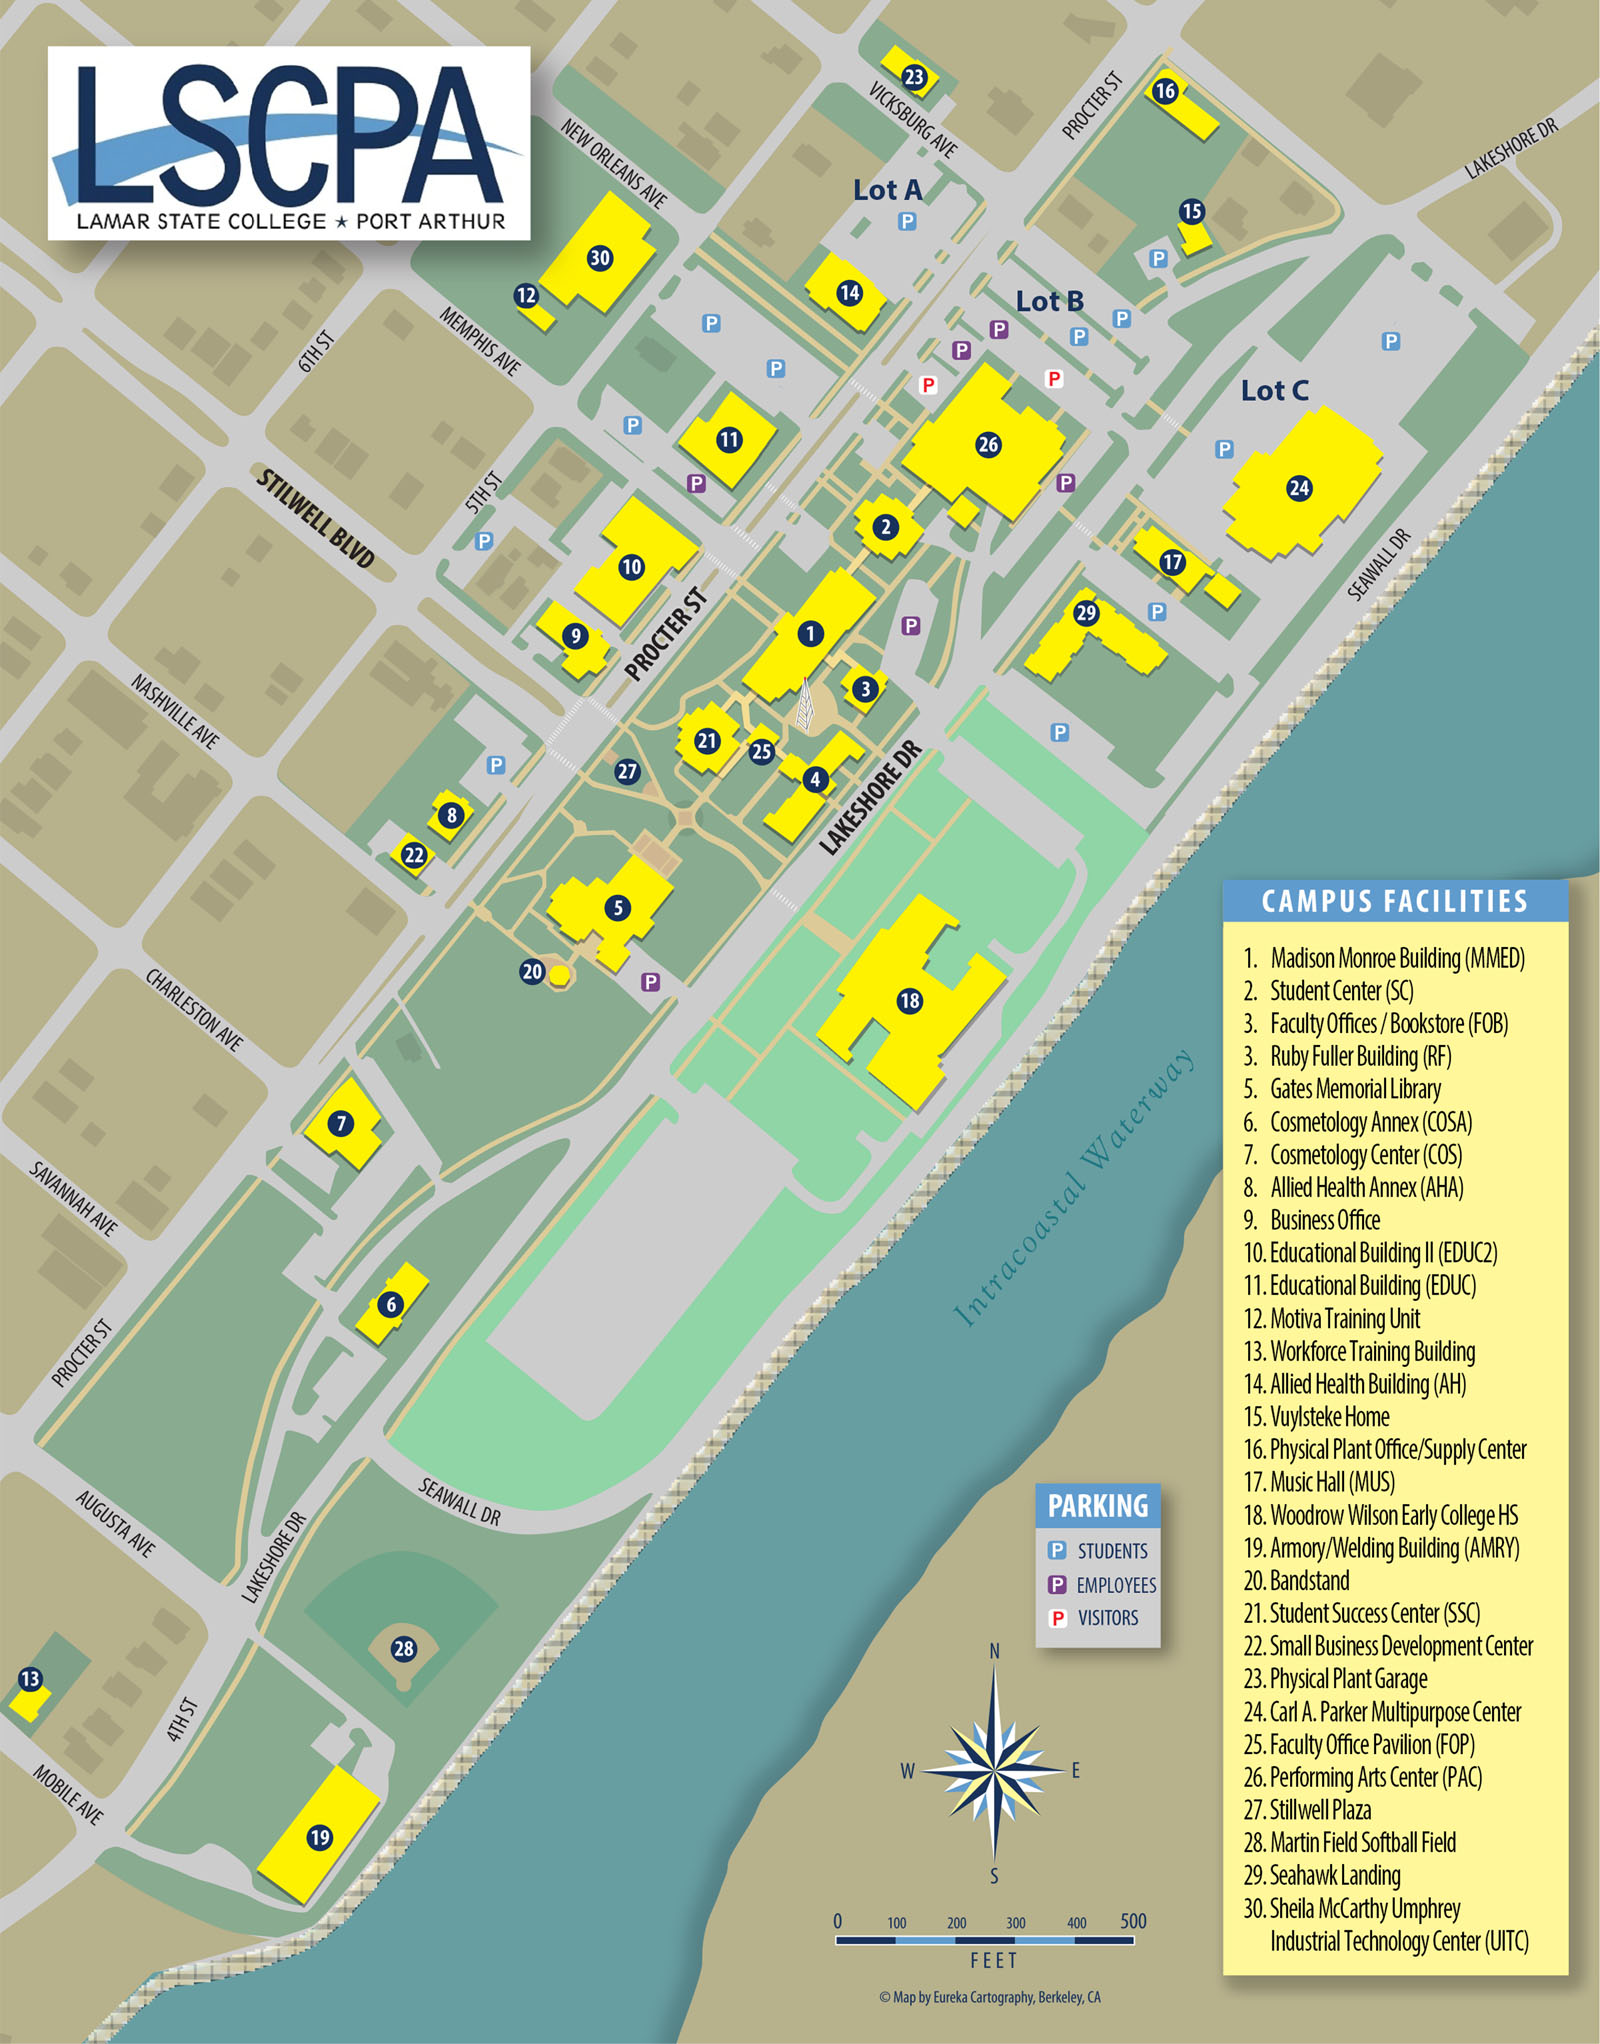 Campus map showing buildings and parking areas.